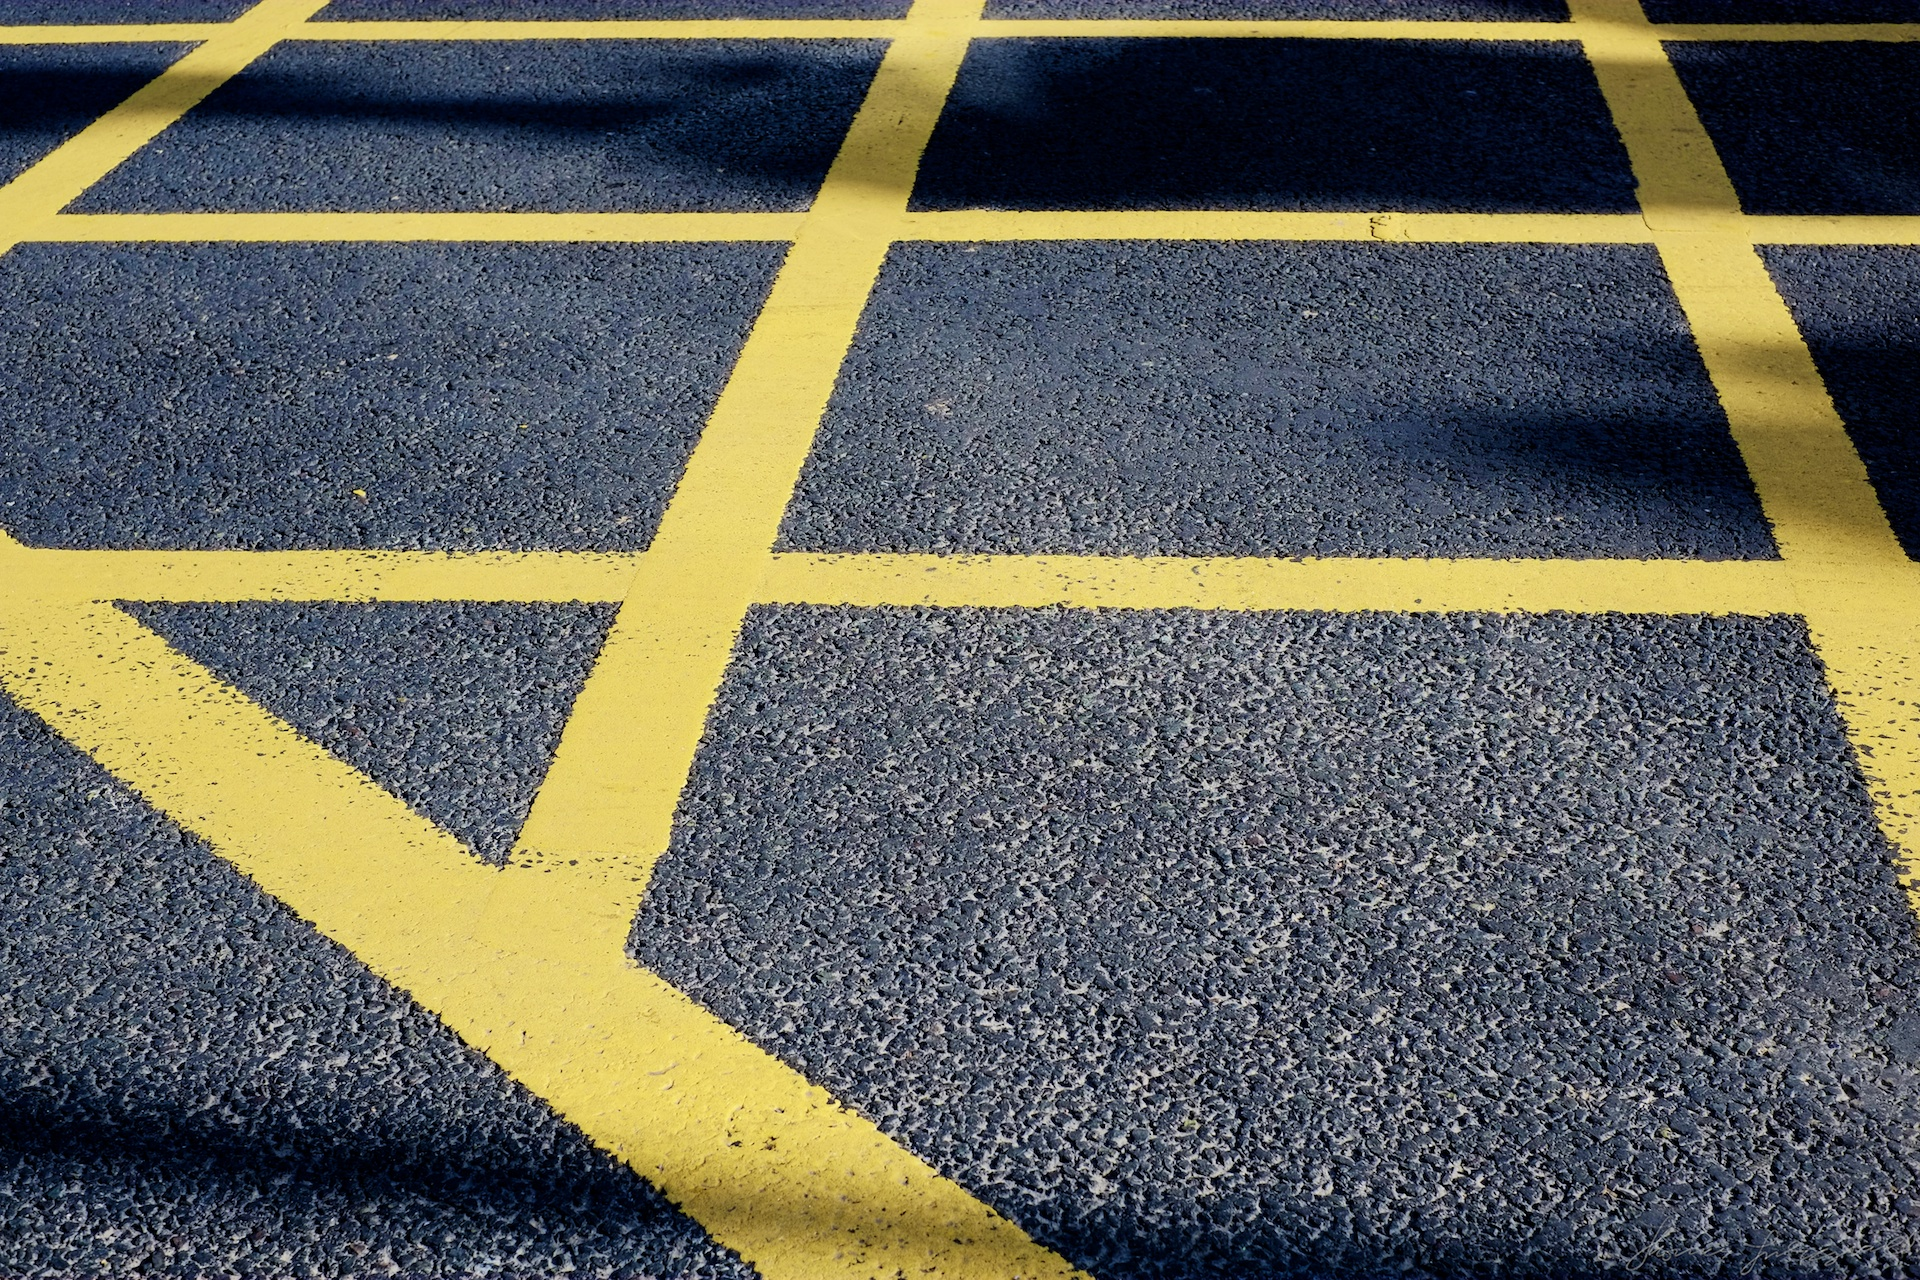 Yellow Lines on a black tarmac road